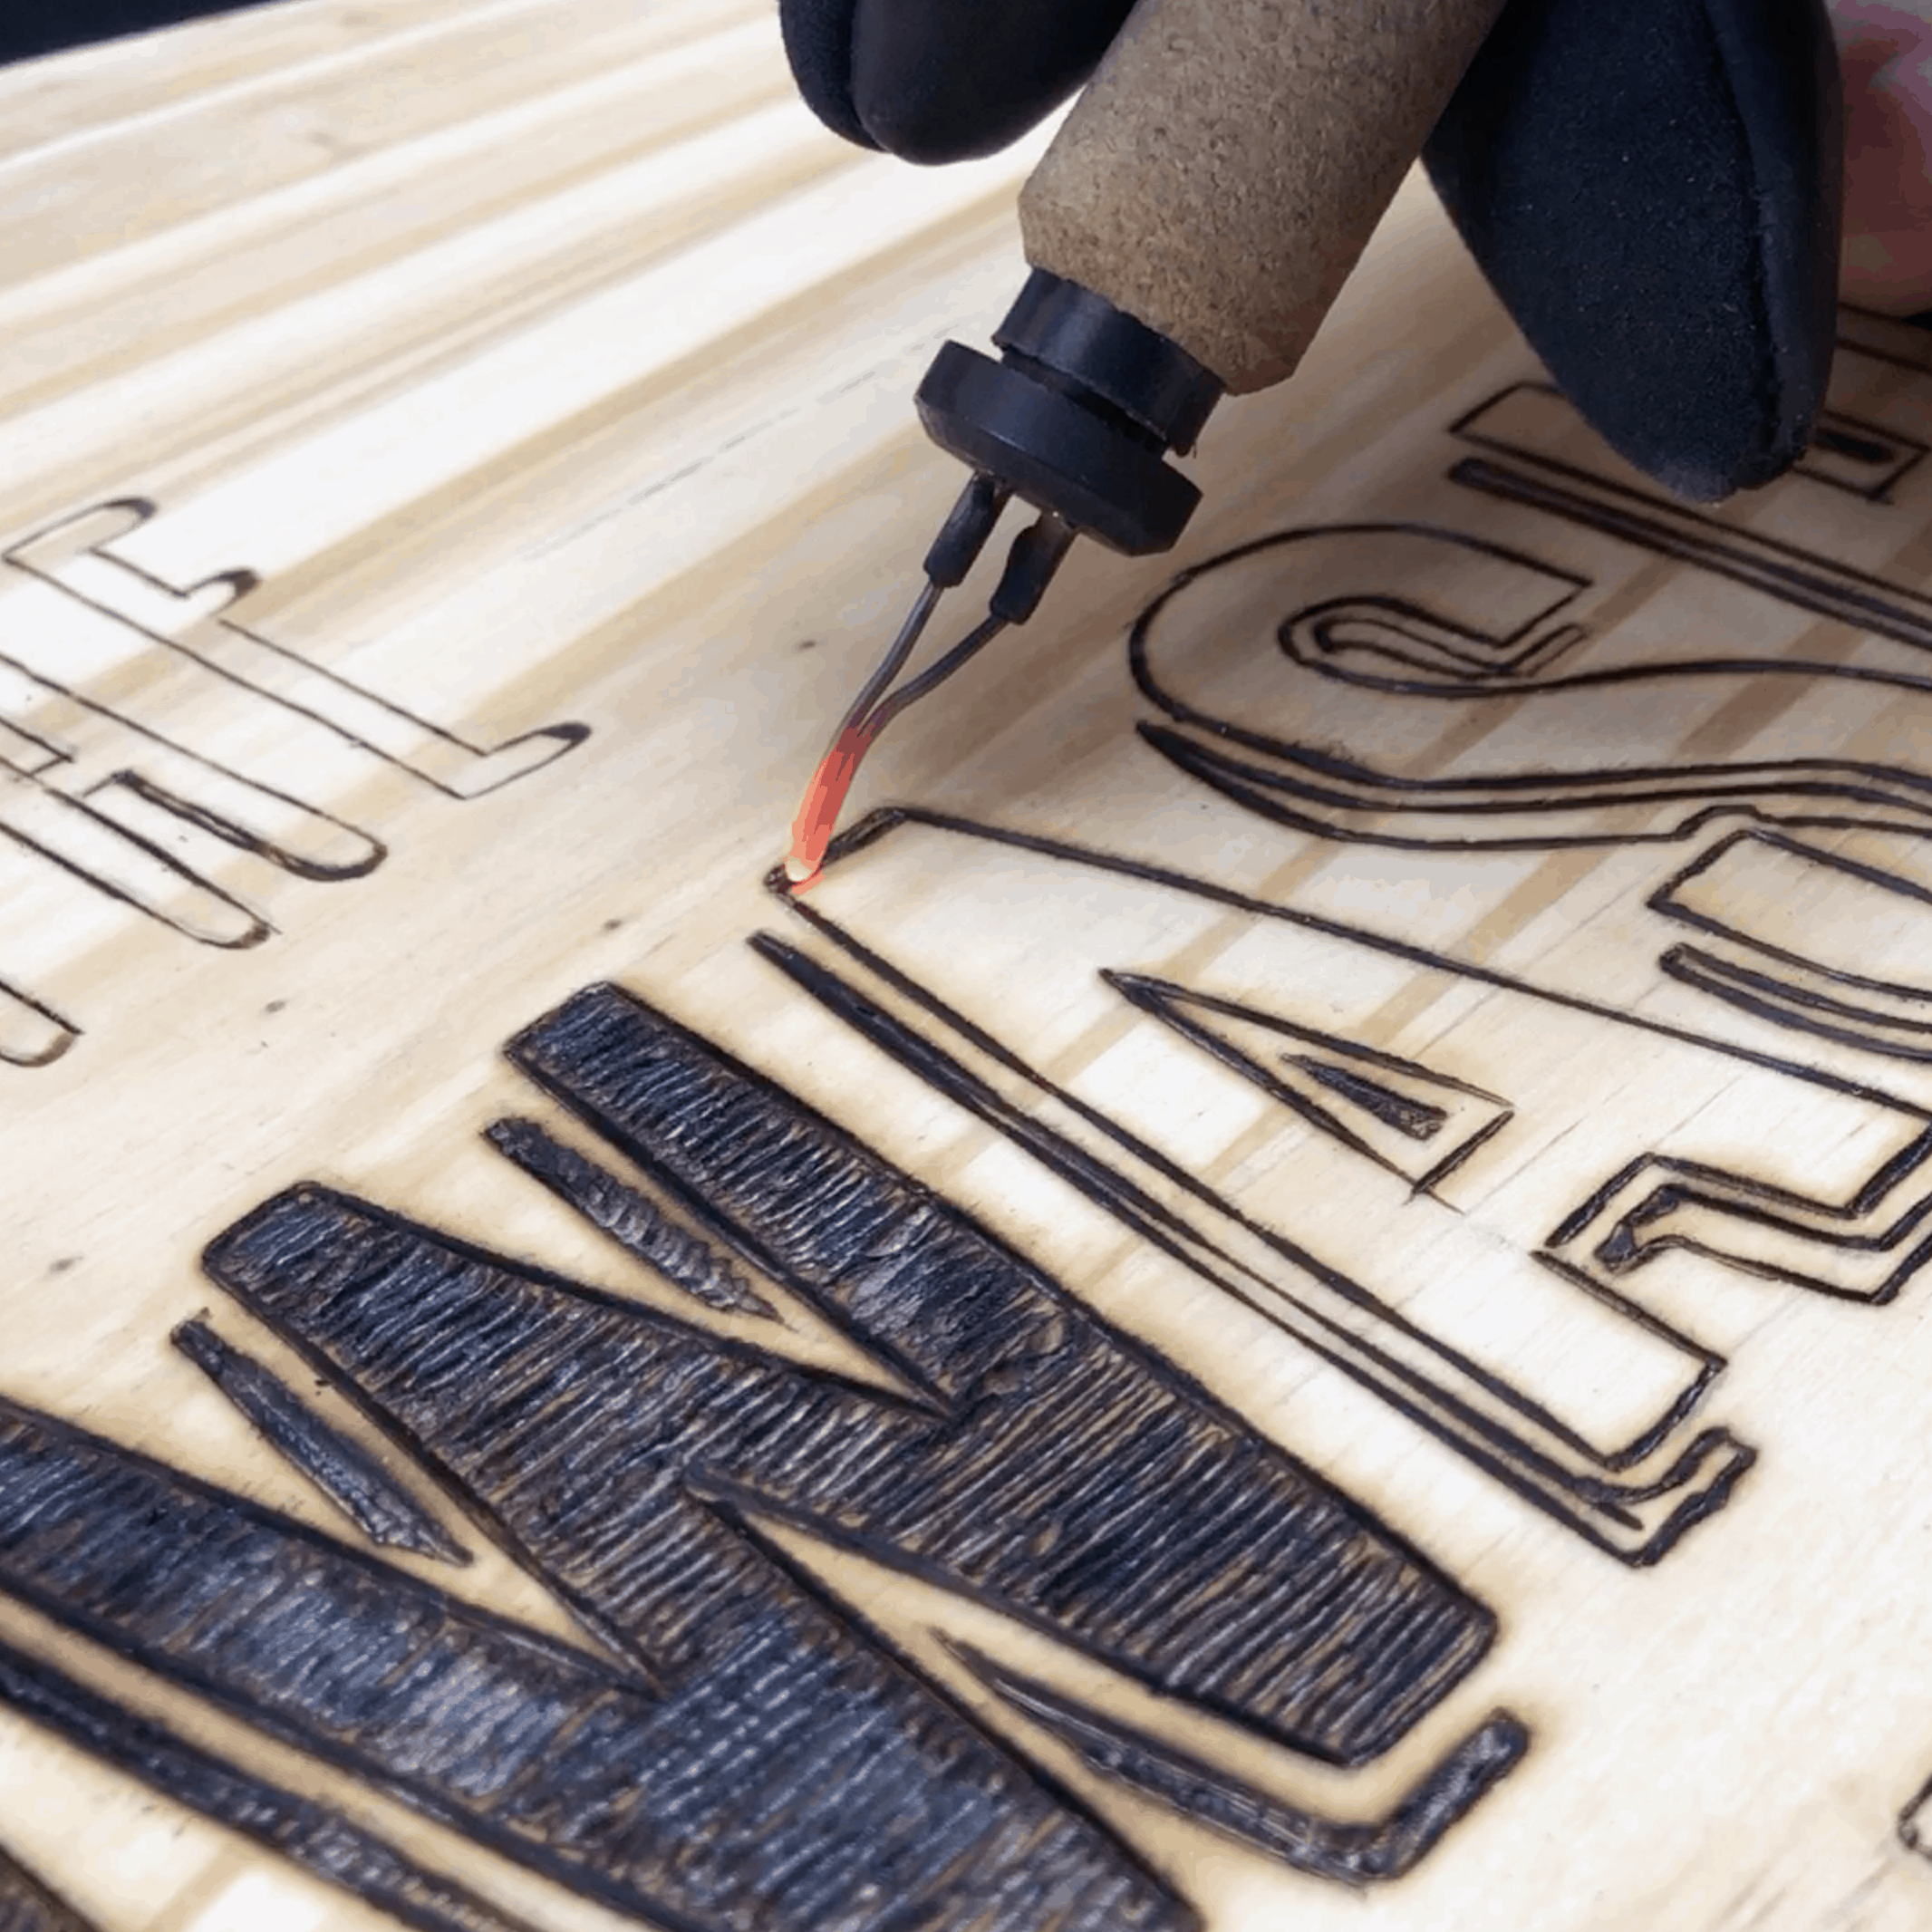 Learn How to Wood Burn in 10 Easy Steps